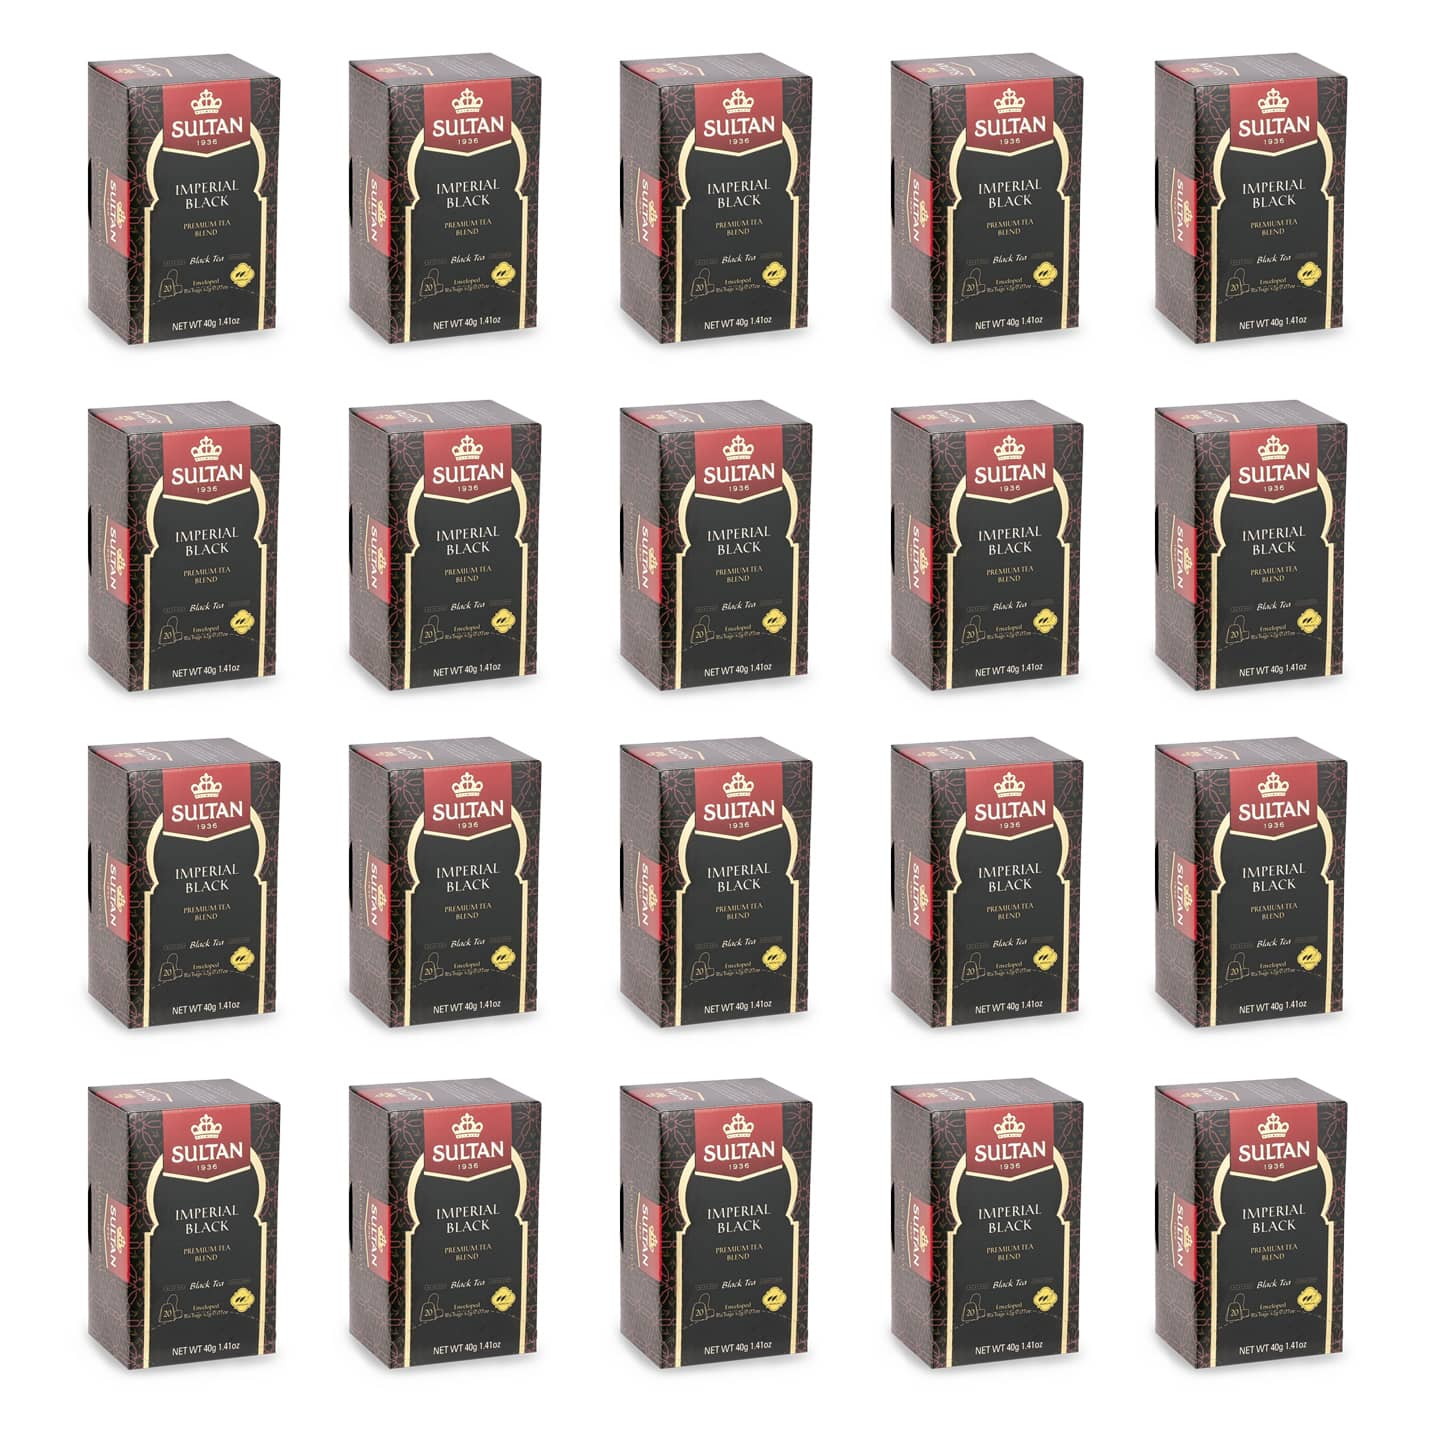 Premium Imperial Black Tea - 20 Tea Bags Bulk Buy